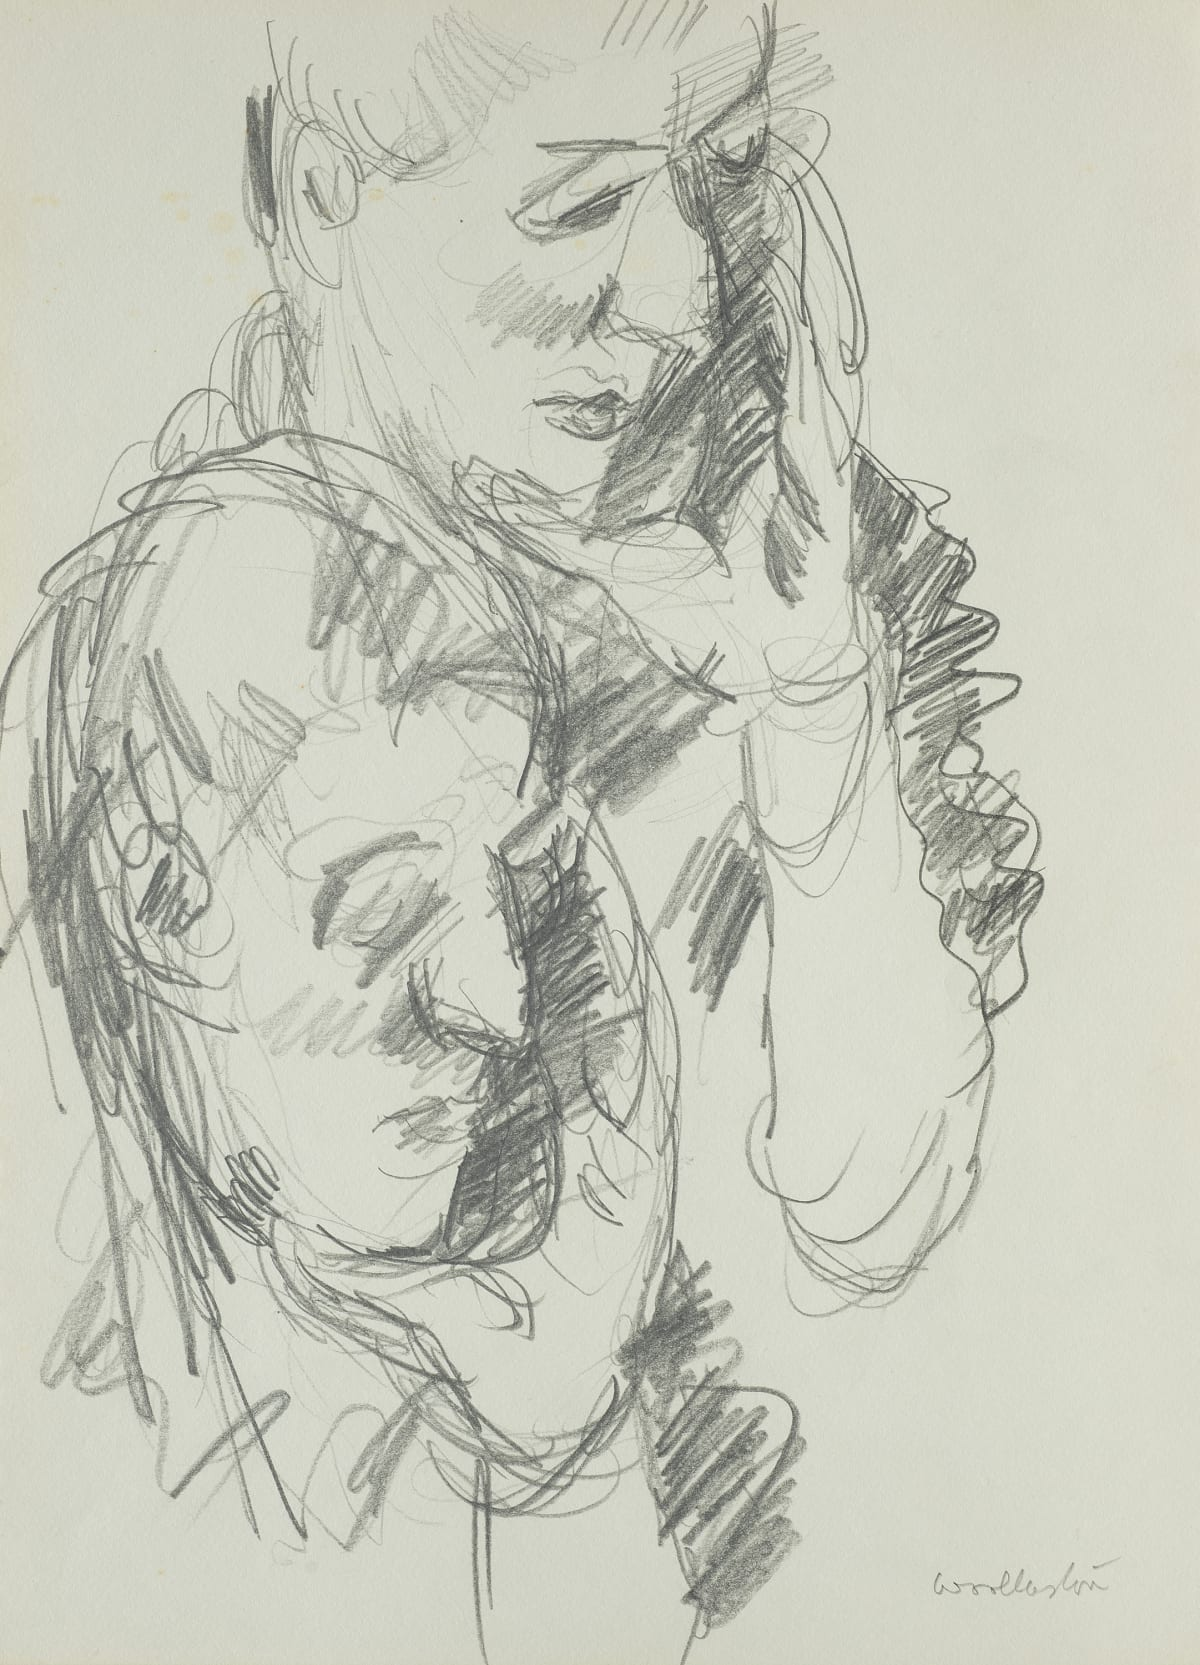 Mountford Tosswill Woollaston David Graham (two heads with chins resting in hands), c1959 pencil on paper 375mm x 275mm